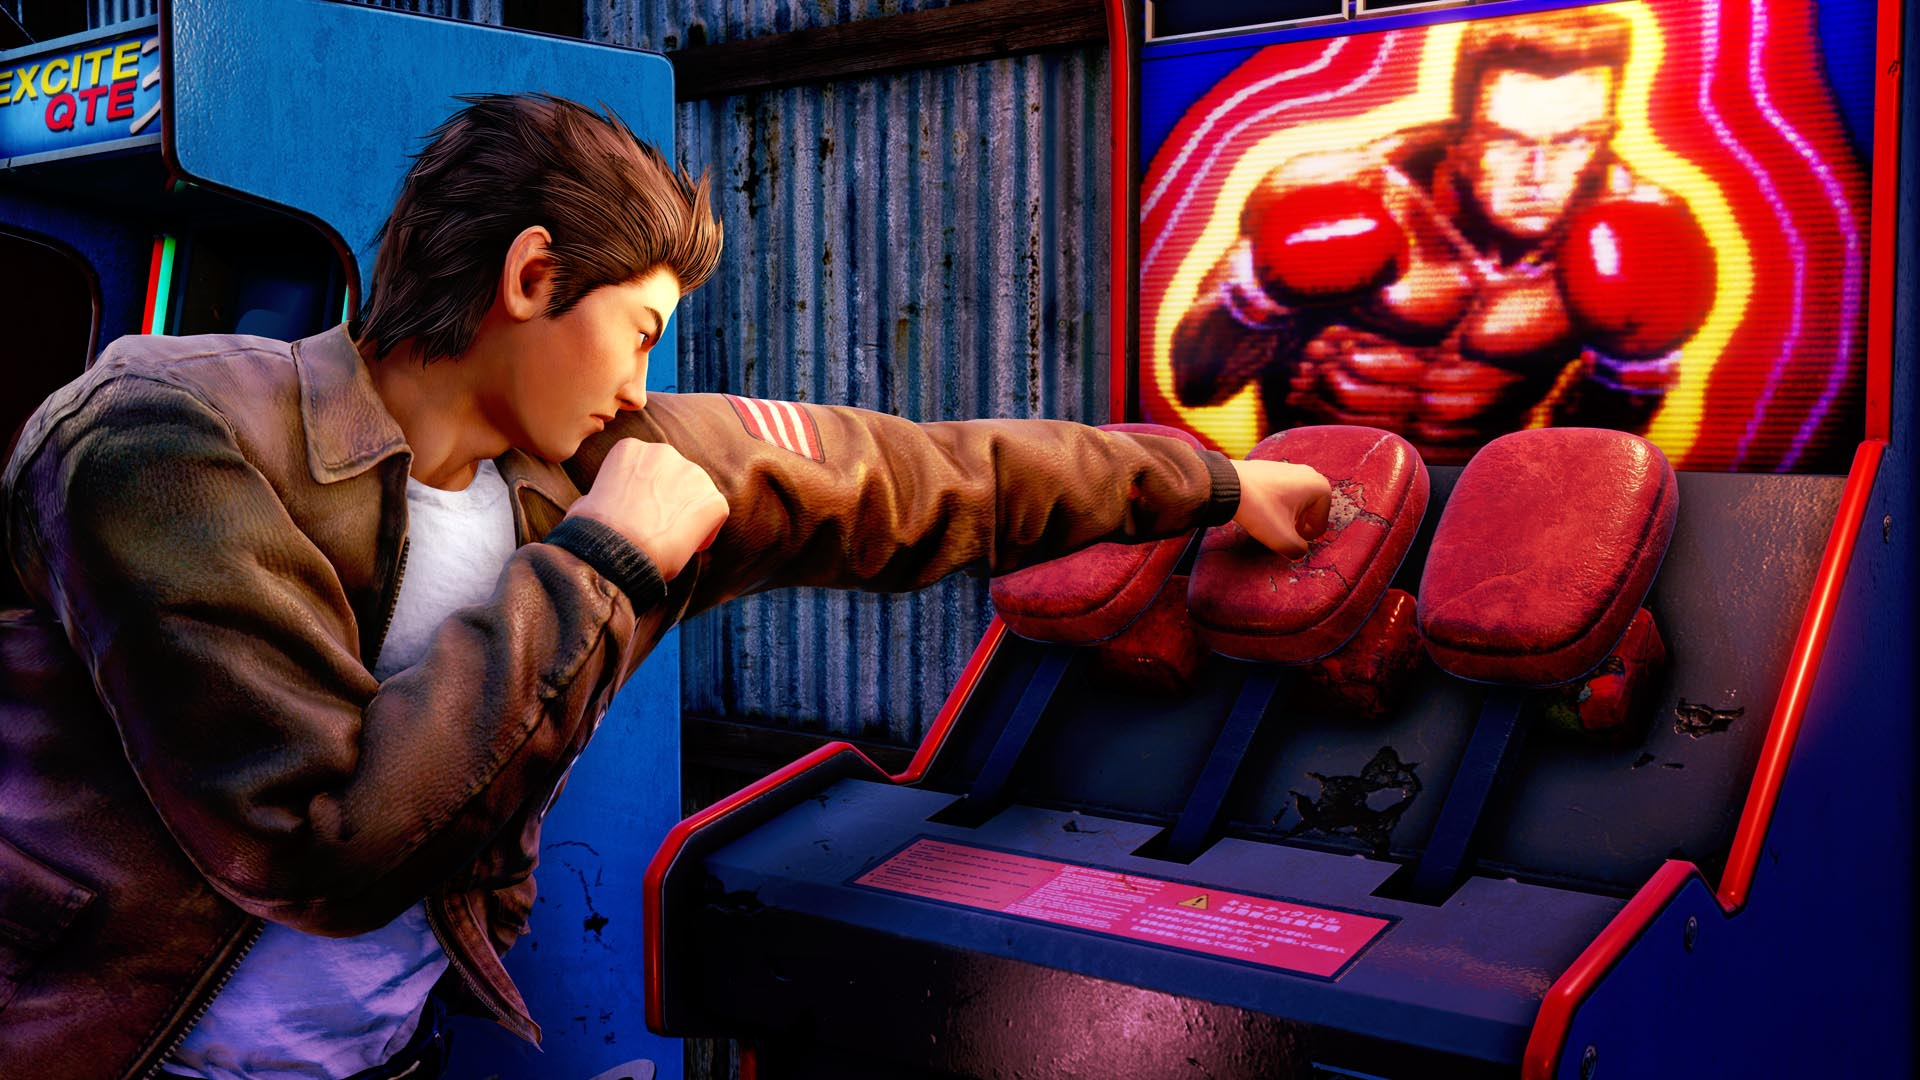 The player character plays a boxing arcade game in early screenshots from Shenmue 3.